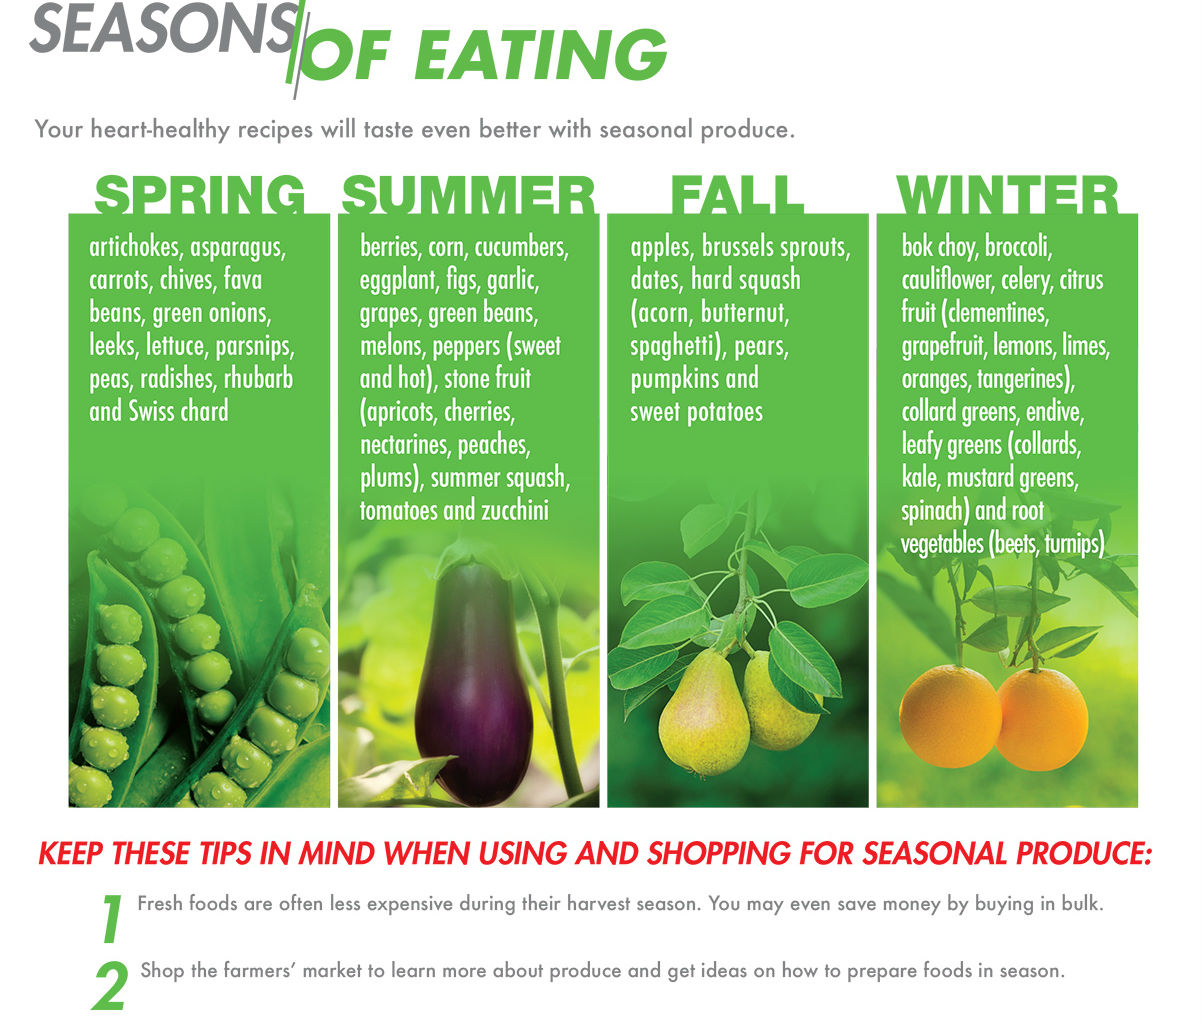 Seasons of Eating Infographic cropped